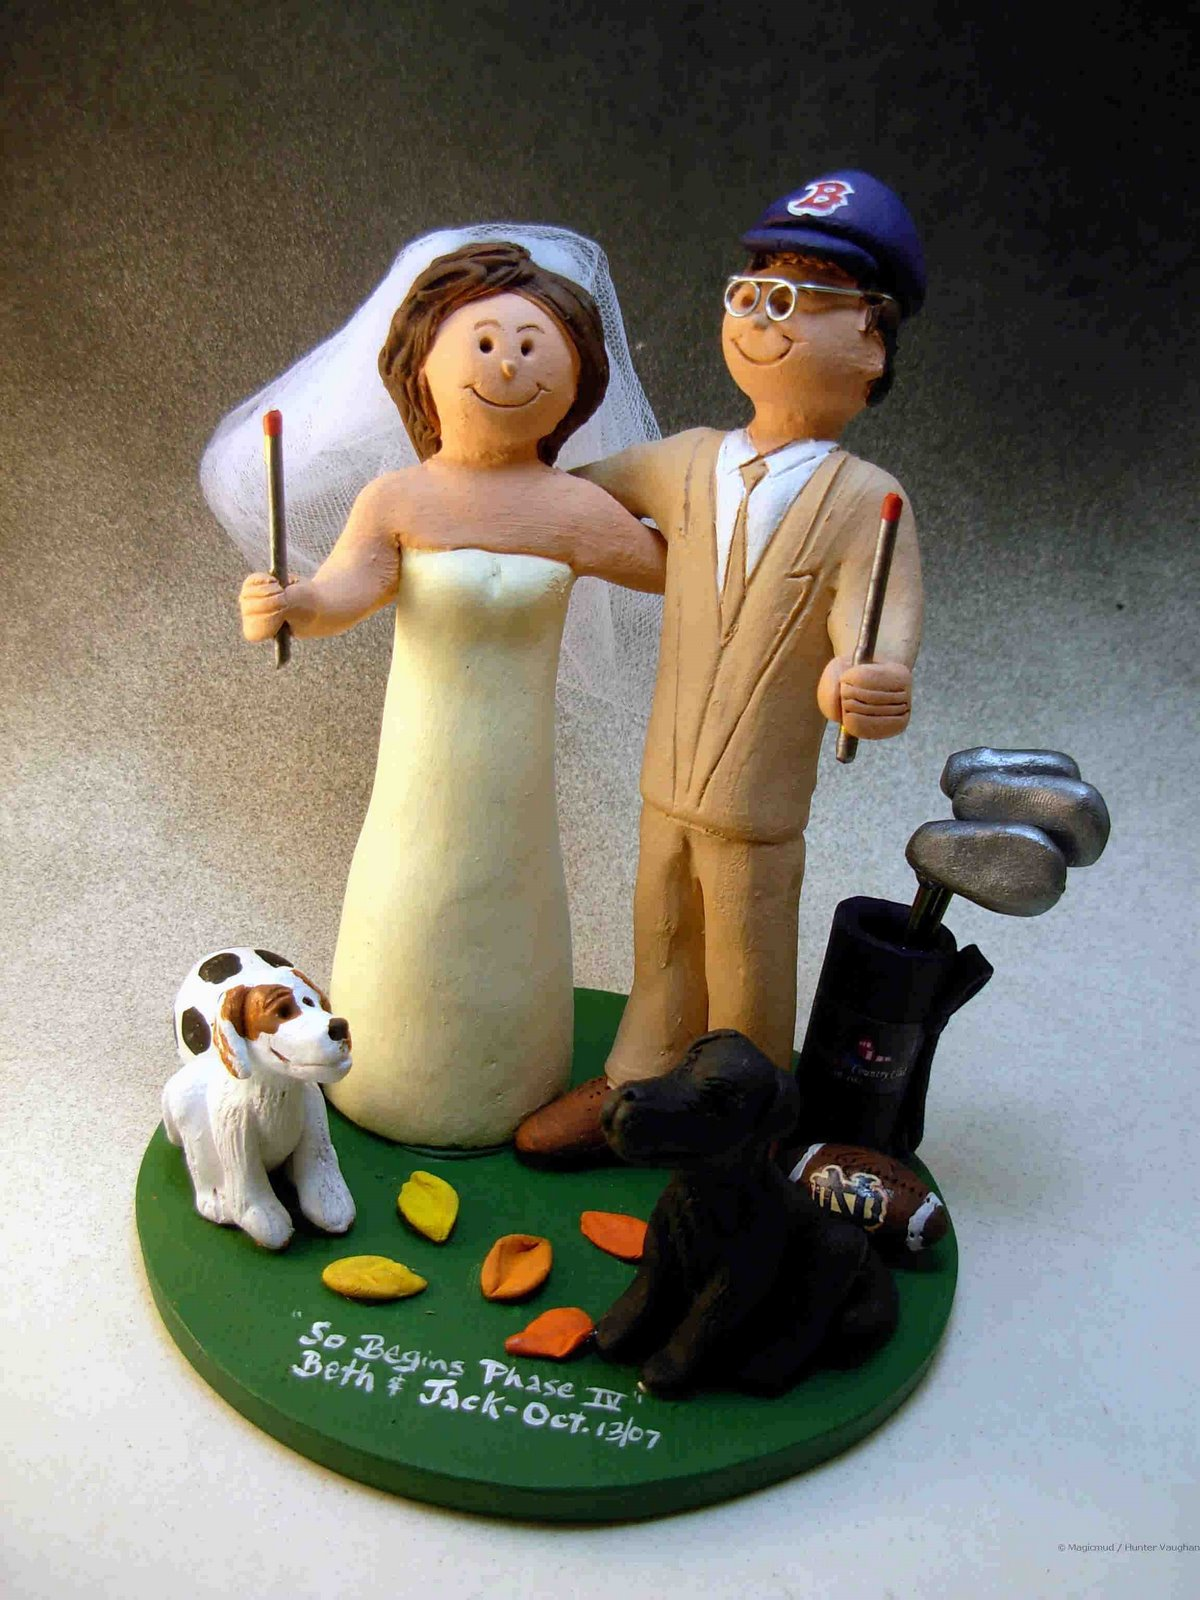 Wedding Cake Topper Of The DayCake With Pet Dogs